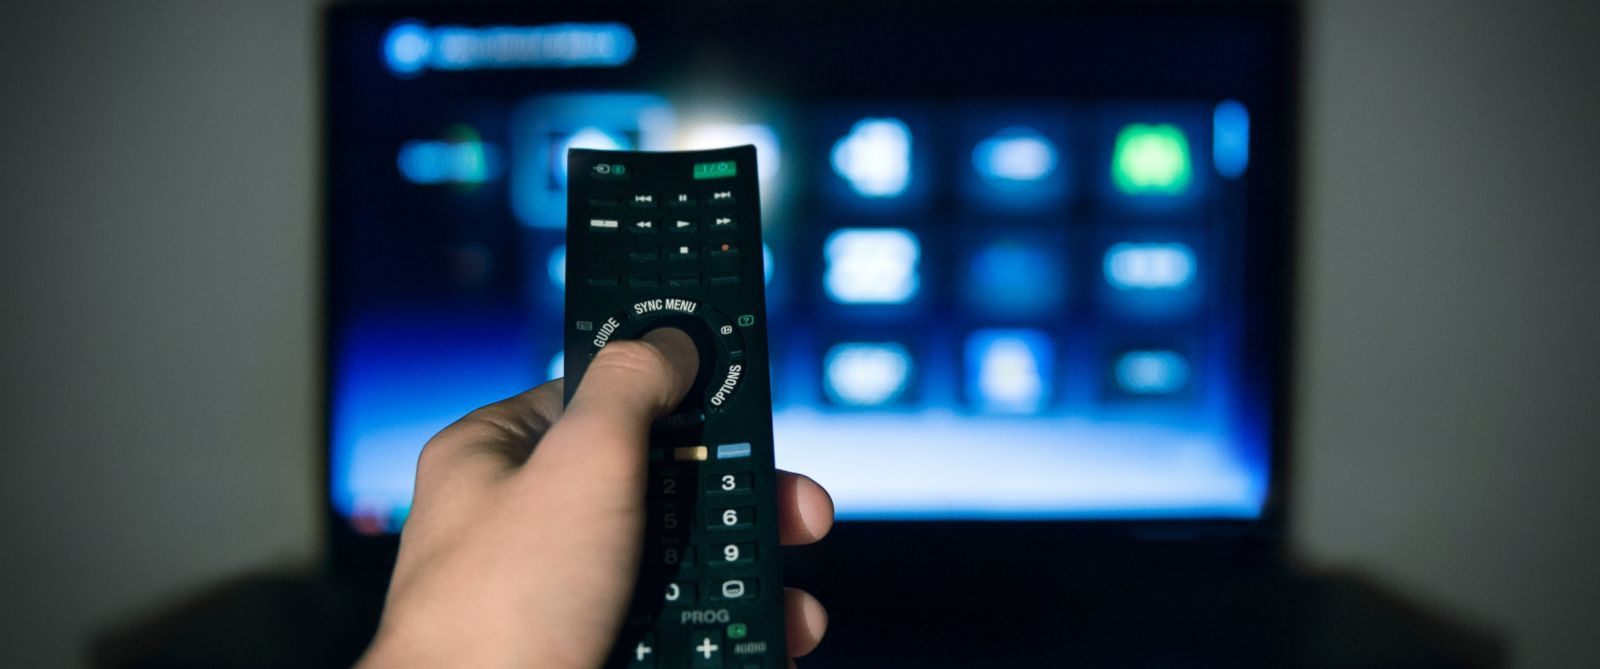 PHOTO: A person is seen watching TV in this stock image.